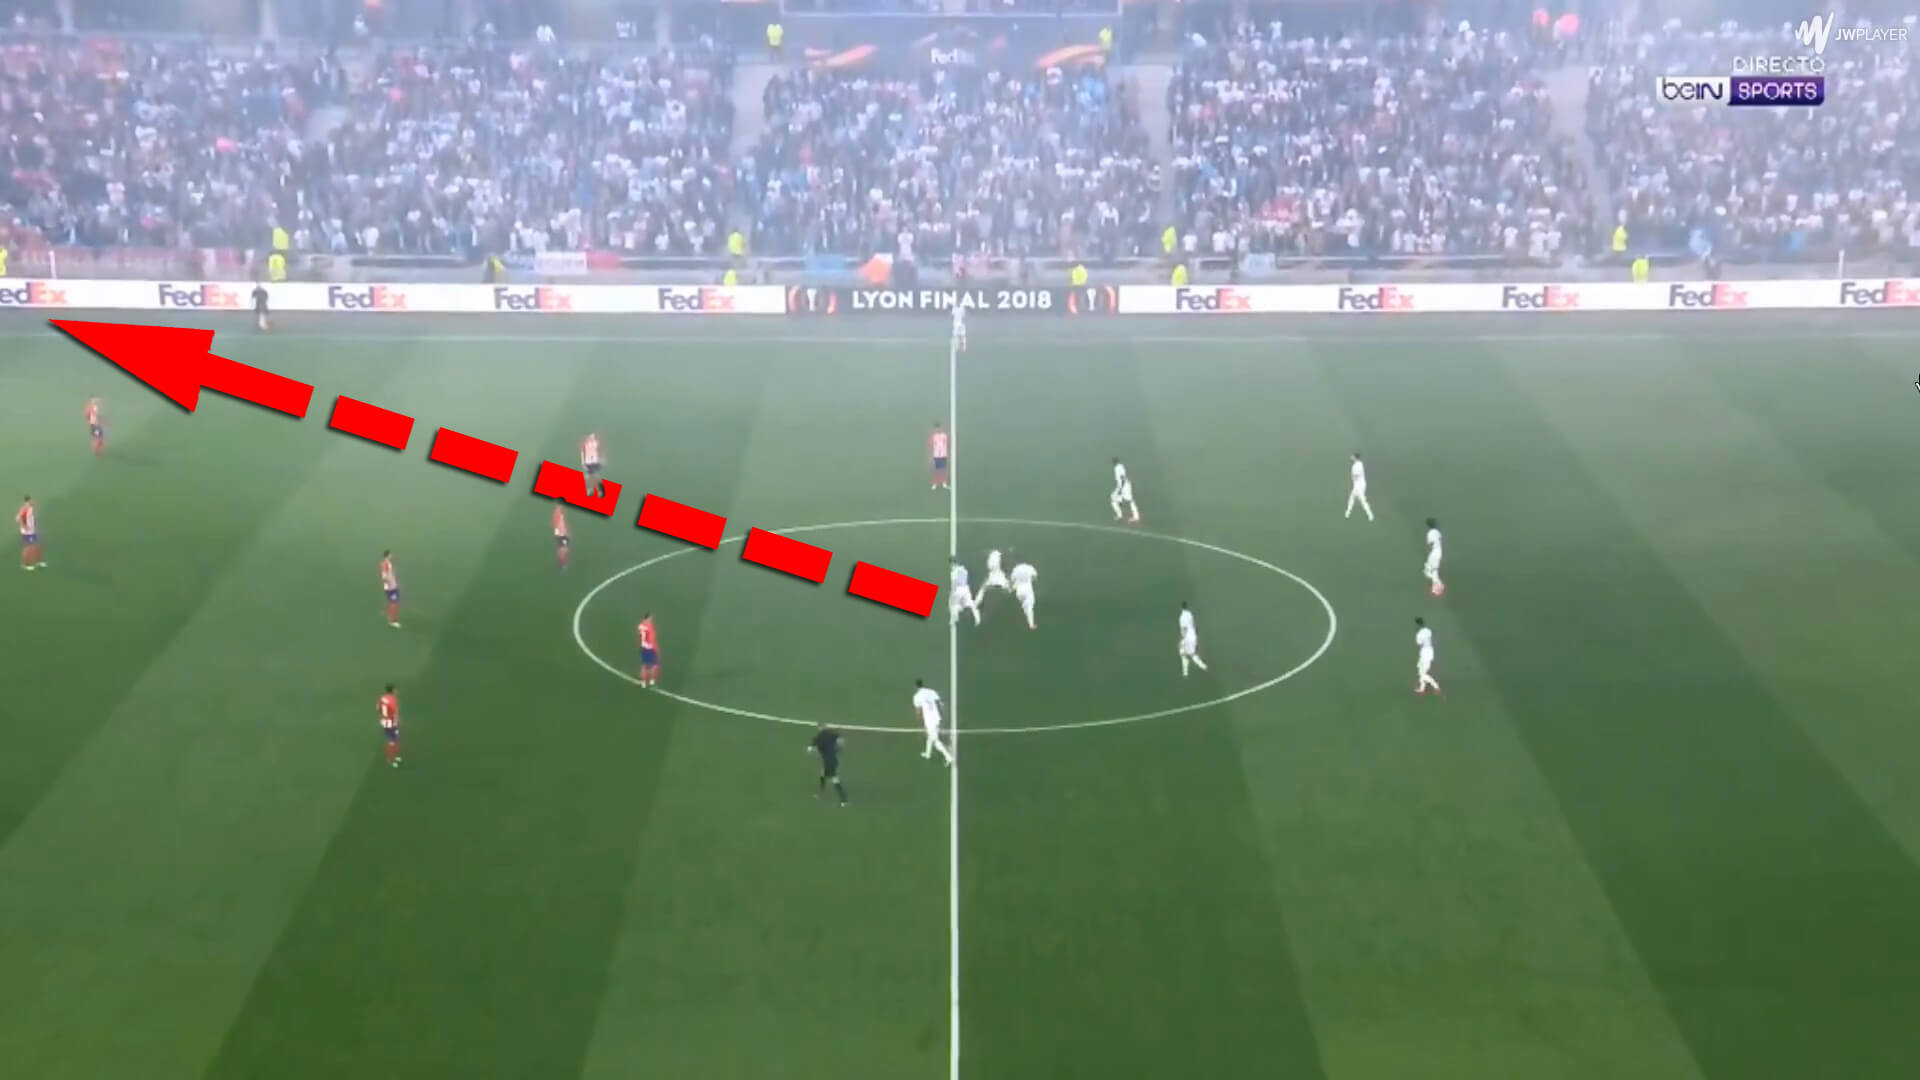 Coaching Analysis: Tactical analysis of different kick-off